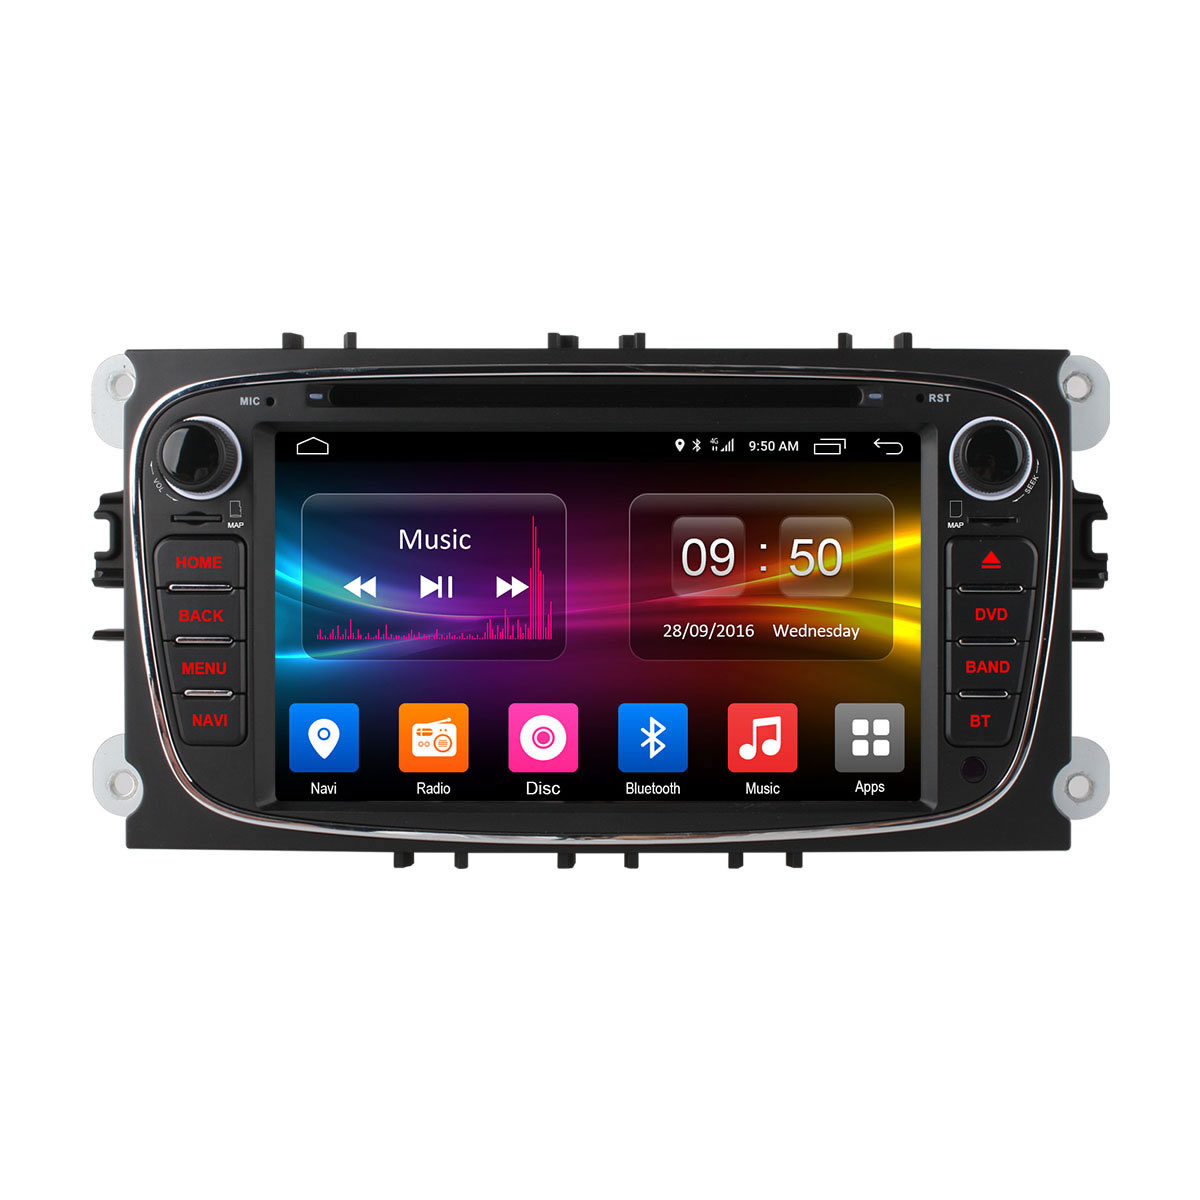 Штатная магнитола CARMEDIA OL-7202-8 (C500+) Ford Focus II, Mondeo, S-MAX, Galaxy, Tourneo/Transit Connect (цвет панели: черный) tansky racing silicone turbo heater and radiator hose kit for nissan silvia s13 s14 s15 180sx 200sx sr20det 10pcs tk nsr002a